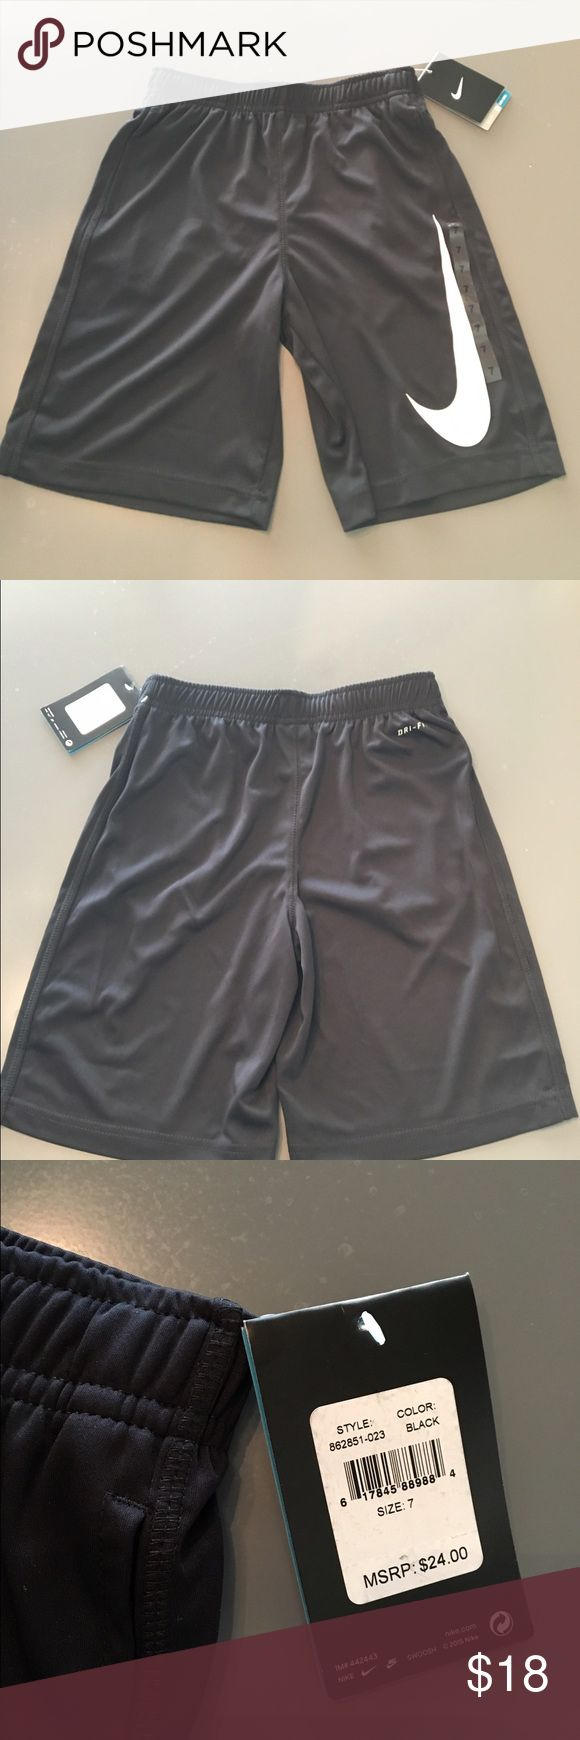 Boys Nike shorts, size 7, Dry Fit, NWT, MSRP $24 New with tags, Black boys Nike shorts. Size 7. MSRP $24 Nike Bottoms Casual